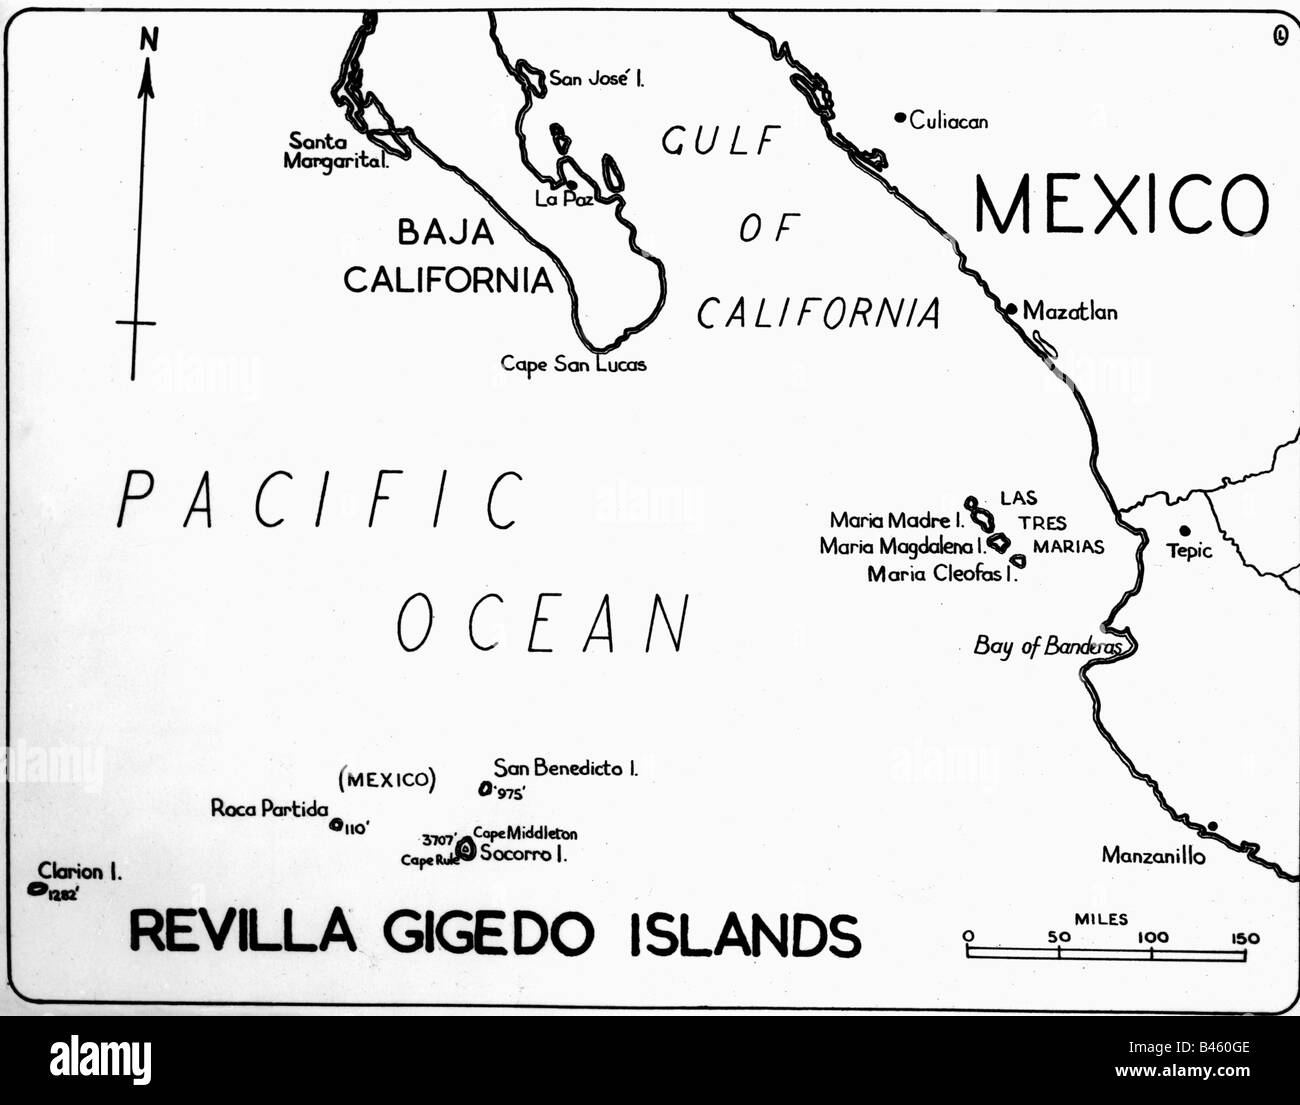 Cartography Maps America Mexico Revilla Gigedo Islands Gulf Of